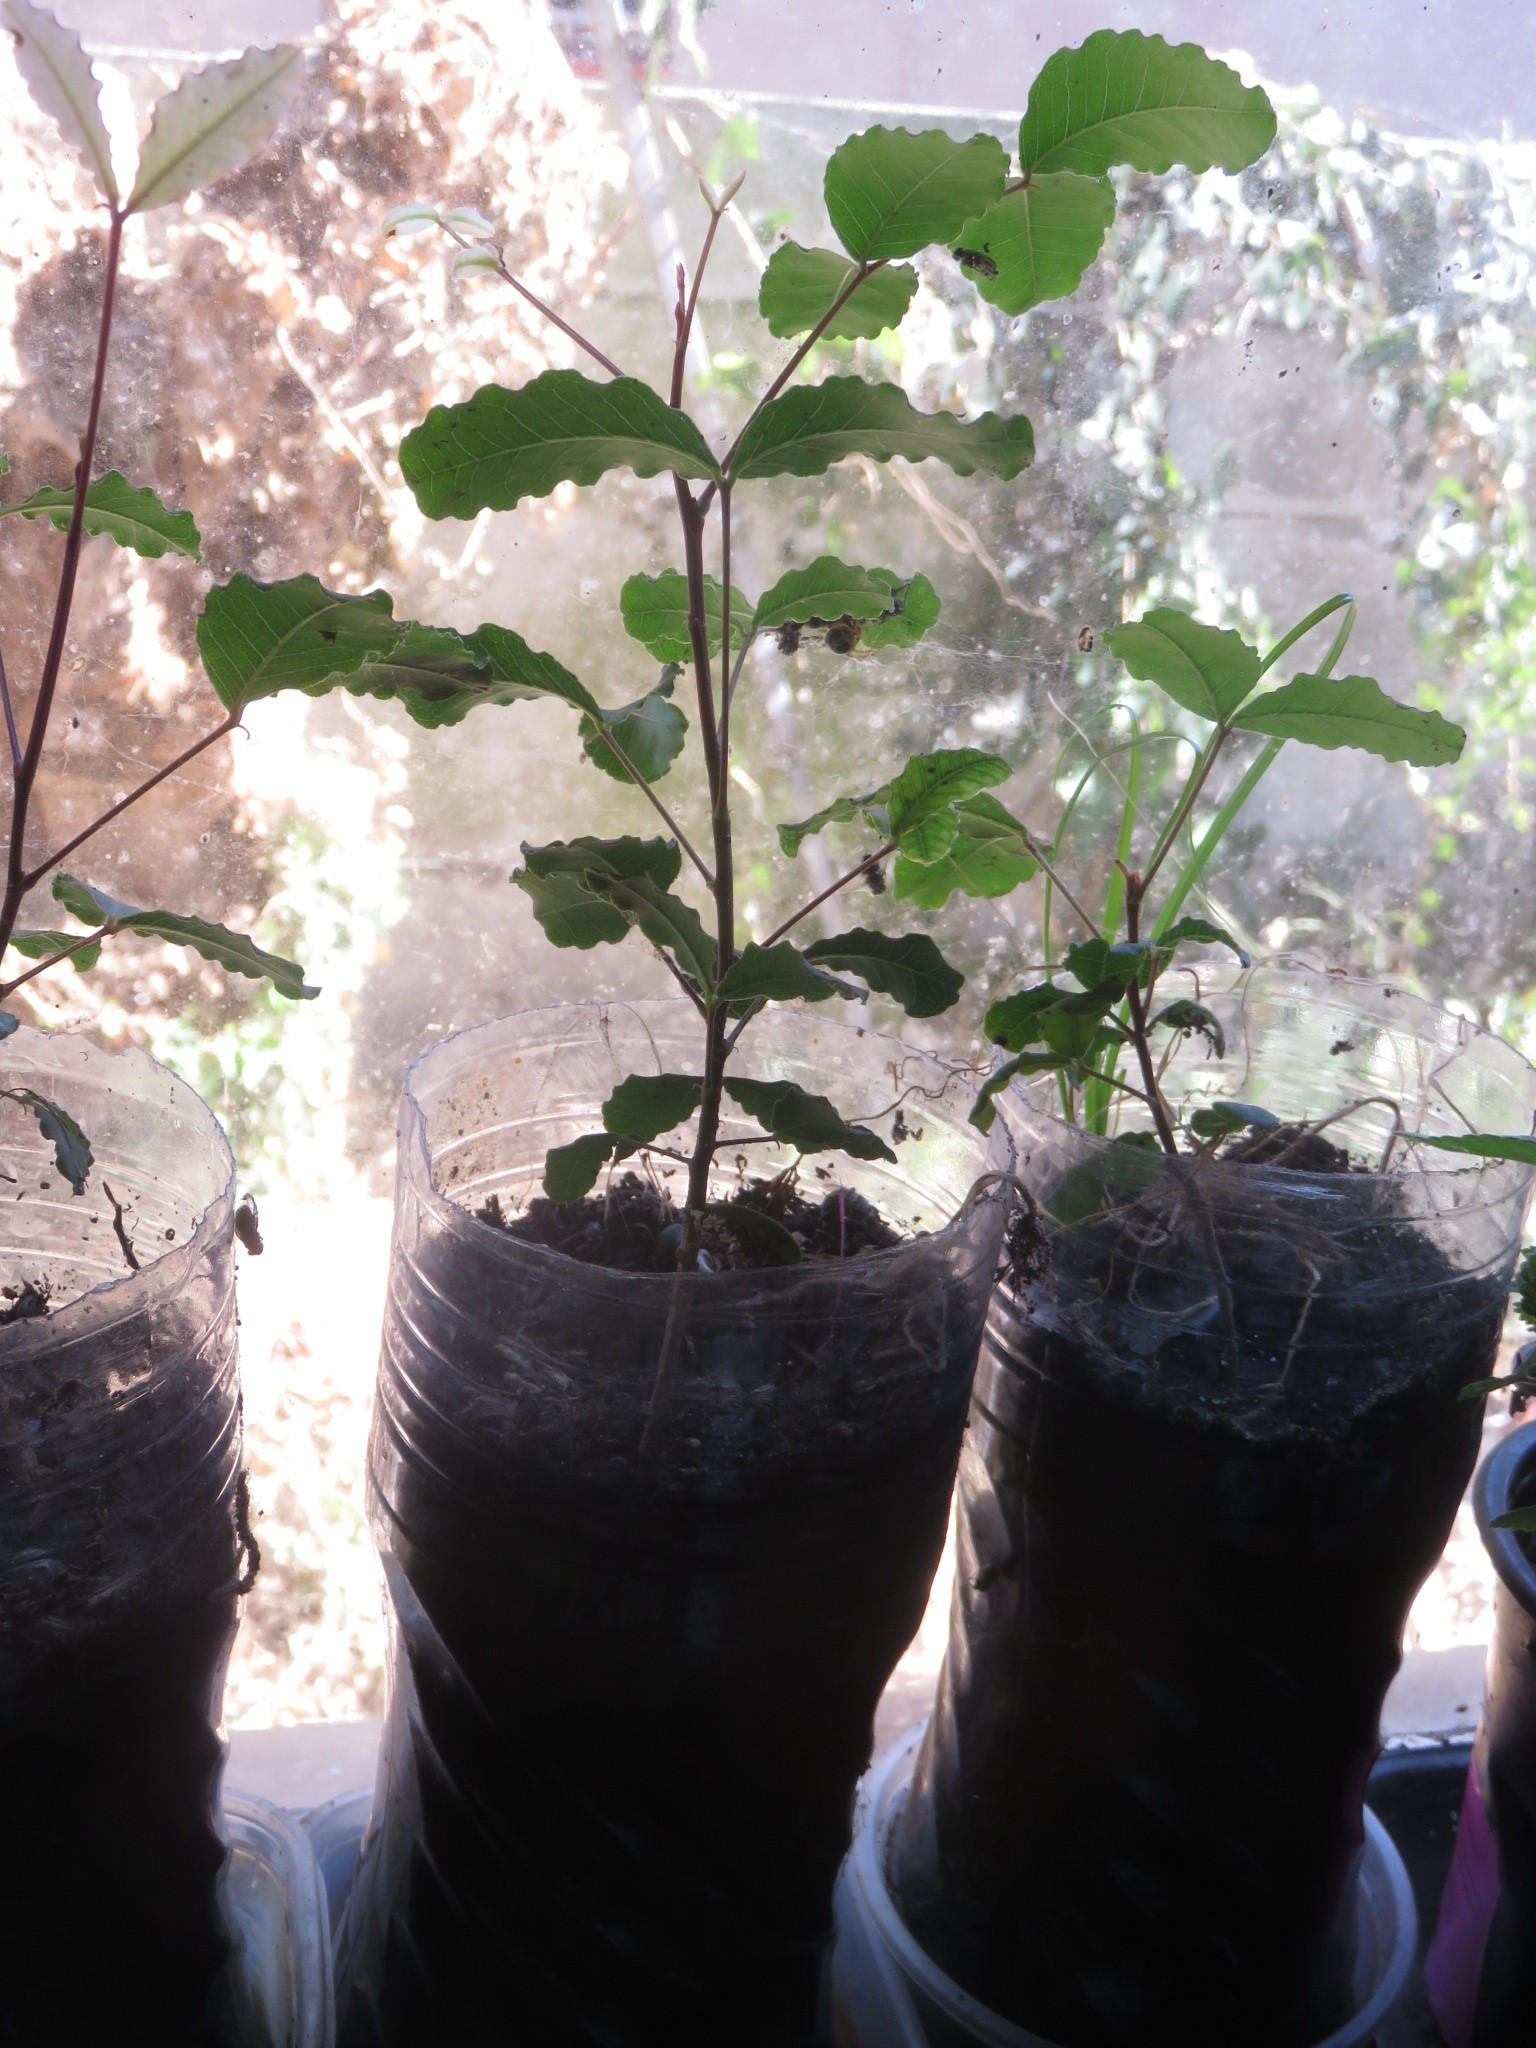 Seedlings about 30cm high at 8 months